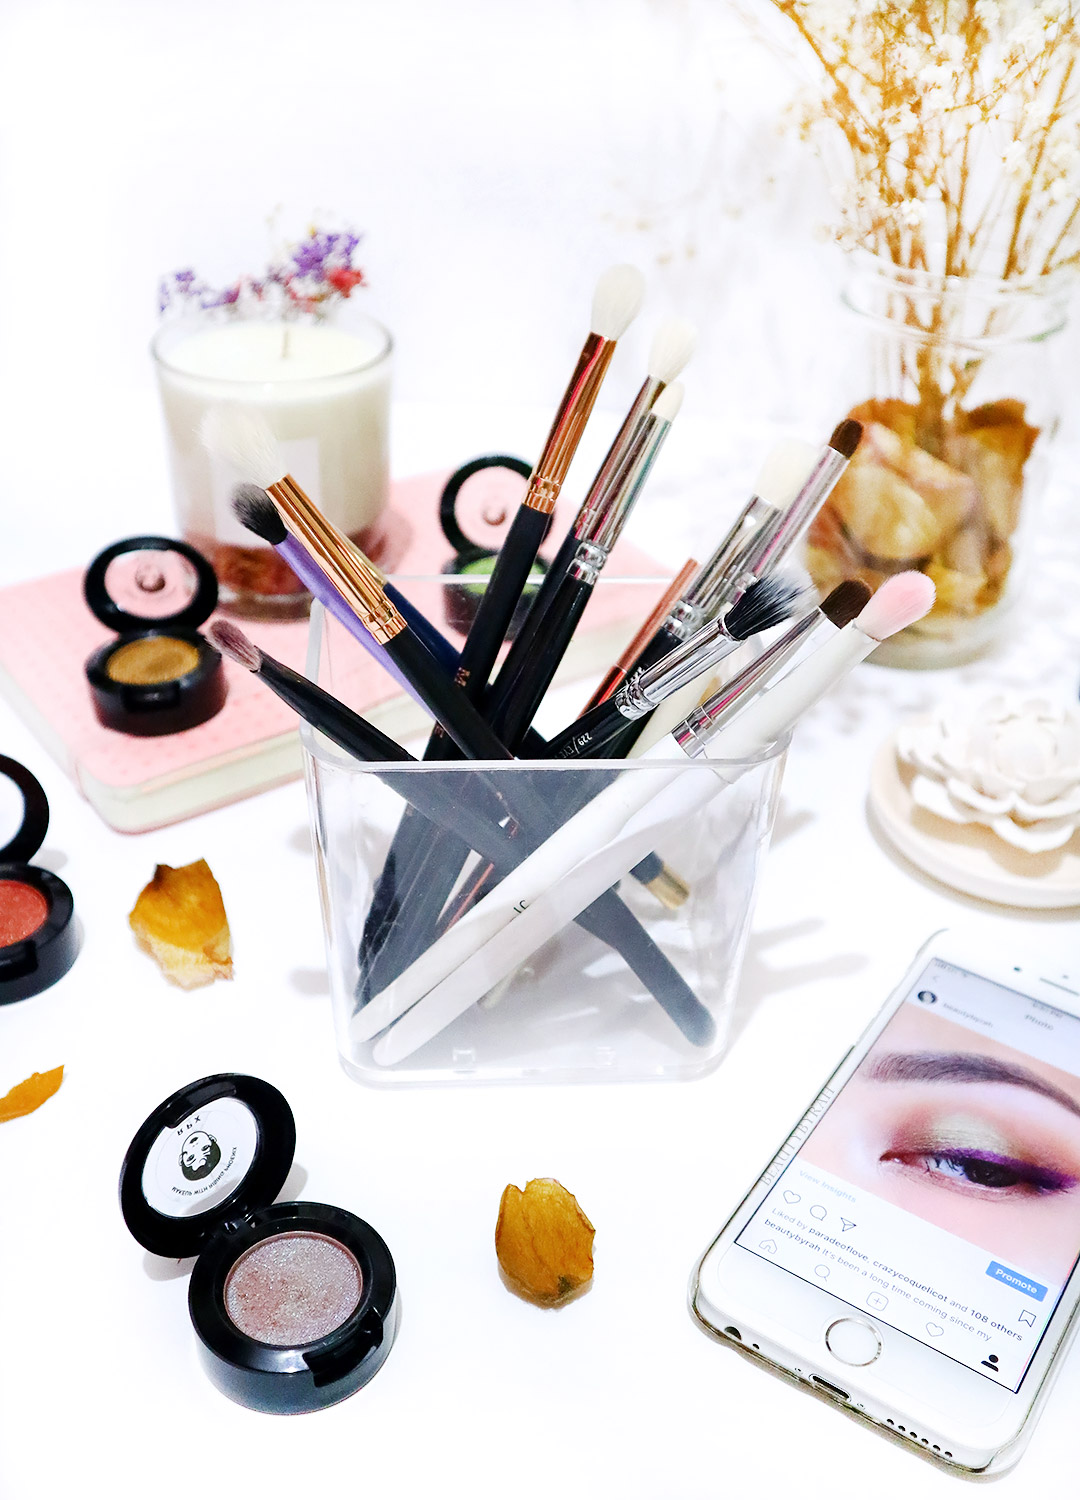 Top affordable eyeshadow brushes must have for beginners